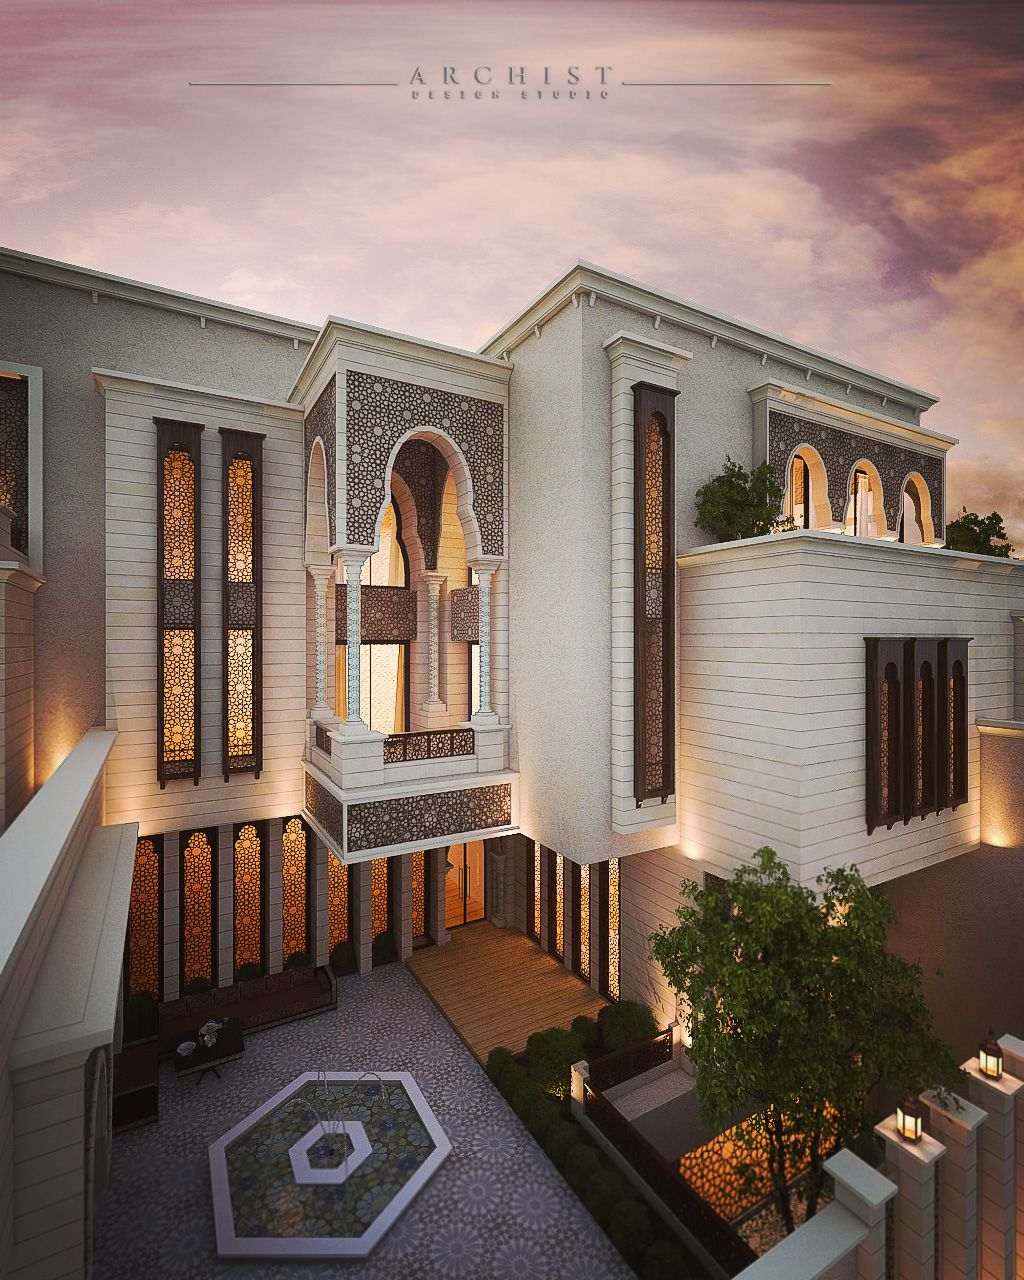 Conceptual Design For Islamic Private Villa Archist Islamic